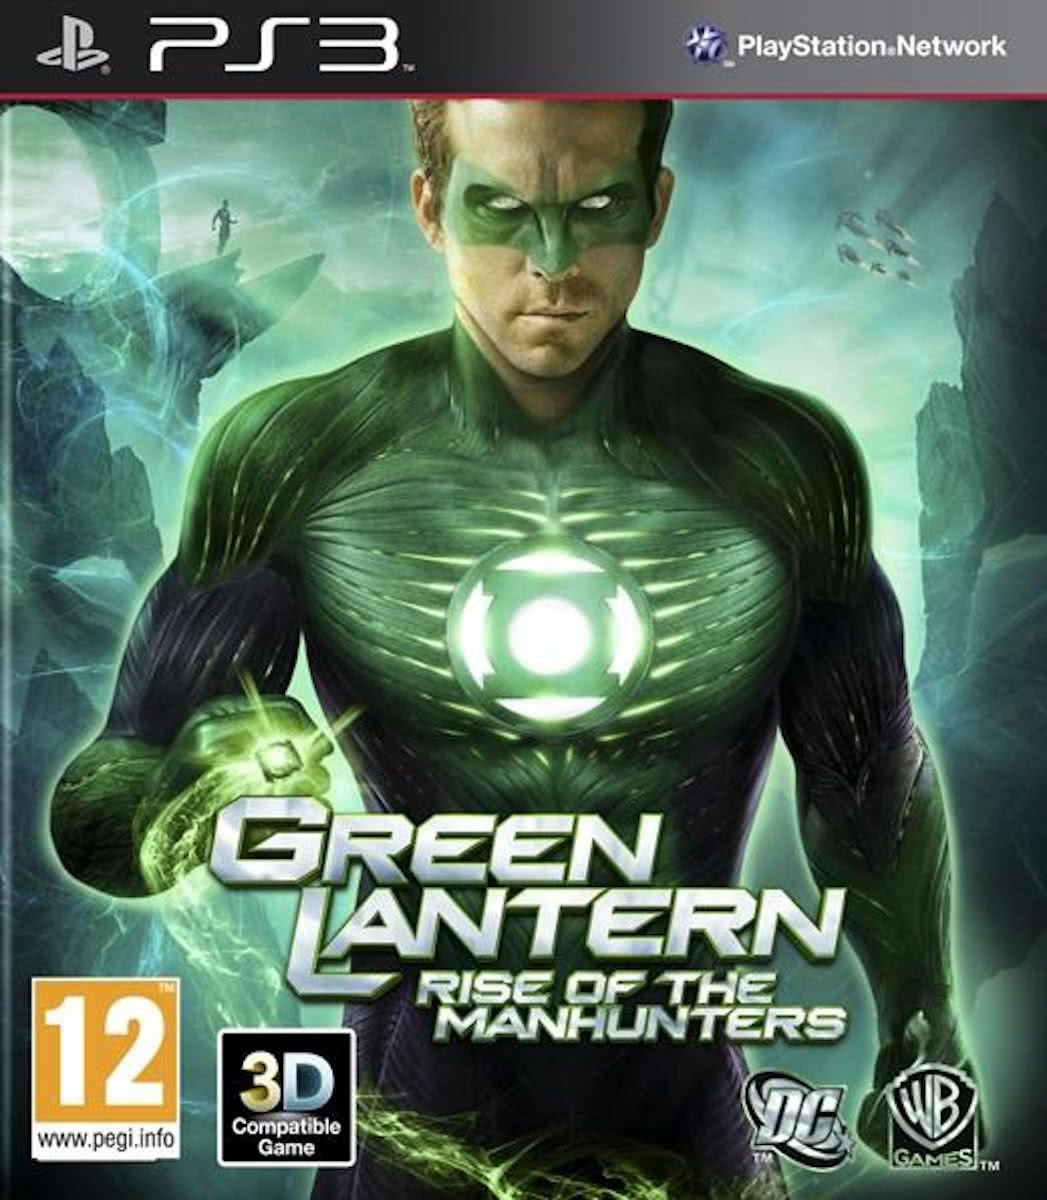 Green Lantern, Rise of the Manhunters PS3